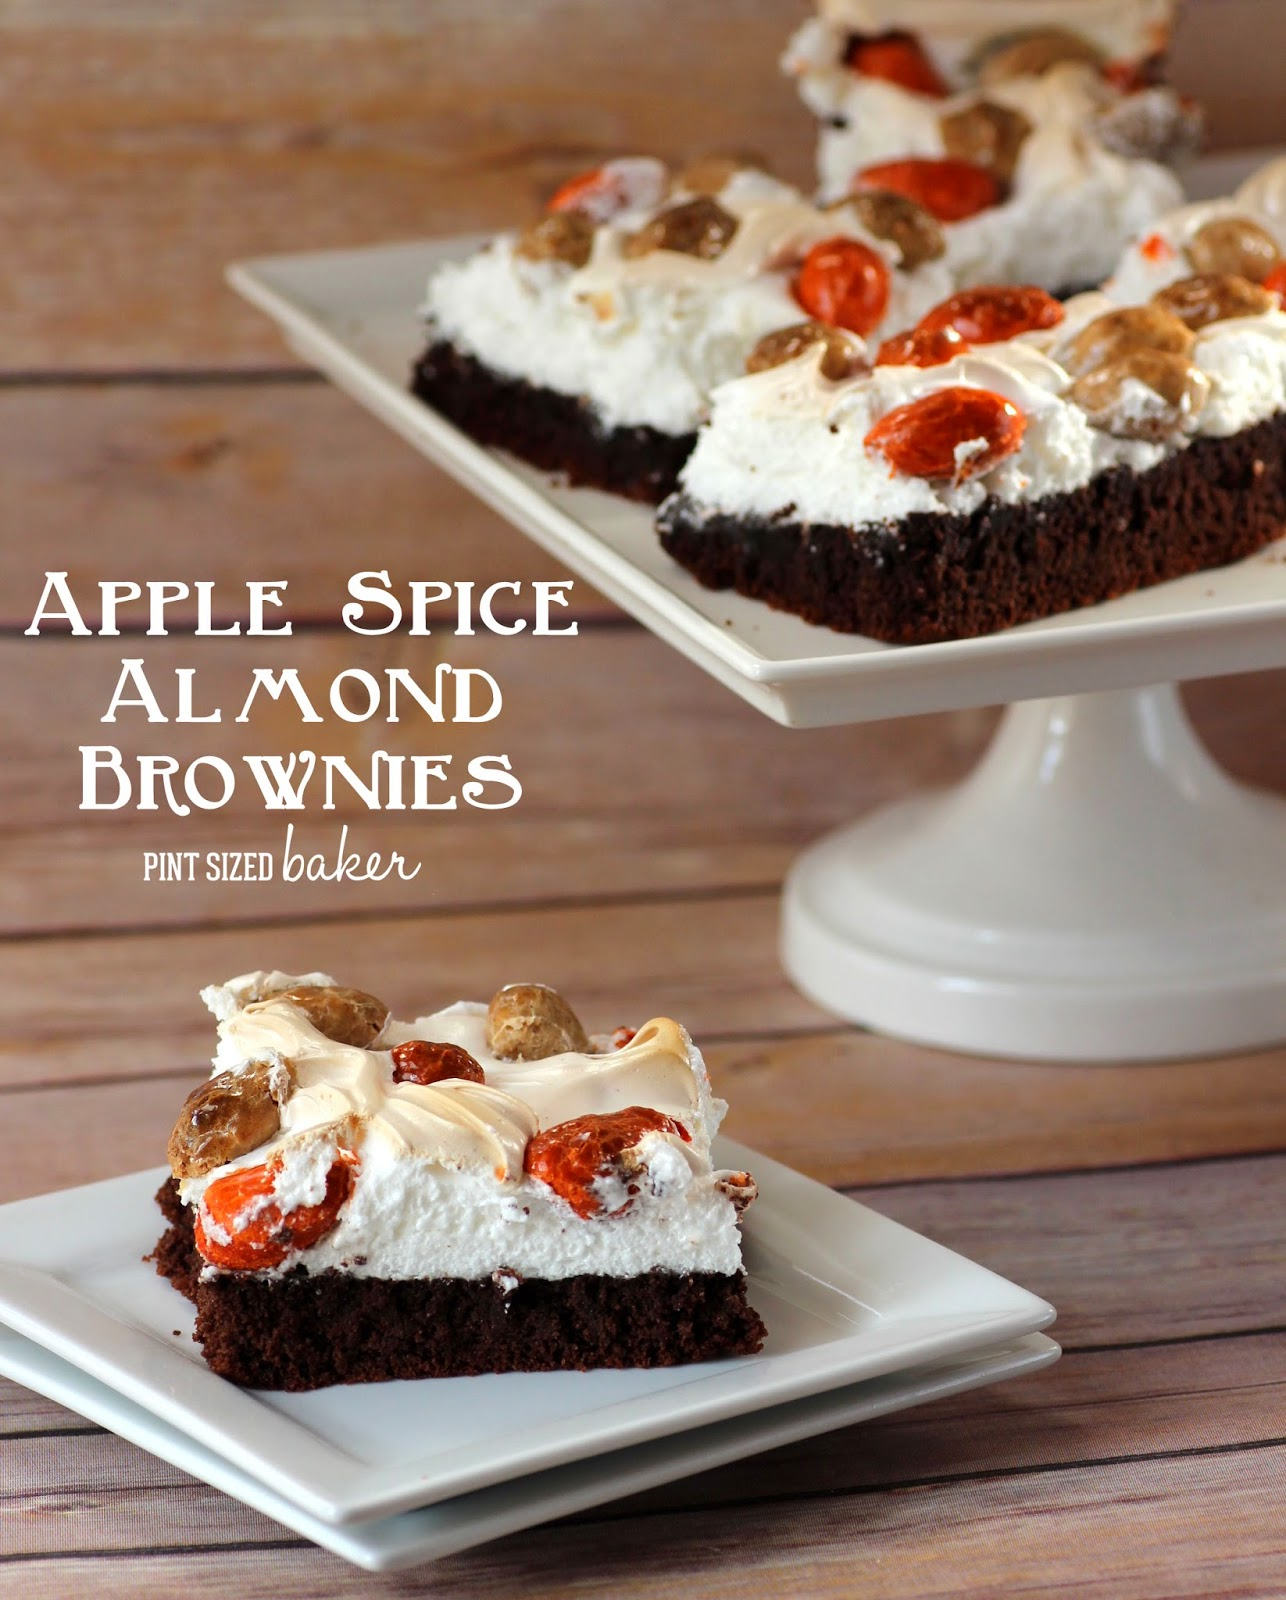 Enjoy the flavor of fall with Apple Spice Almond Brownies. Perfect for a crowd.